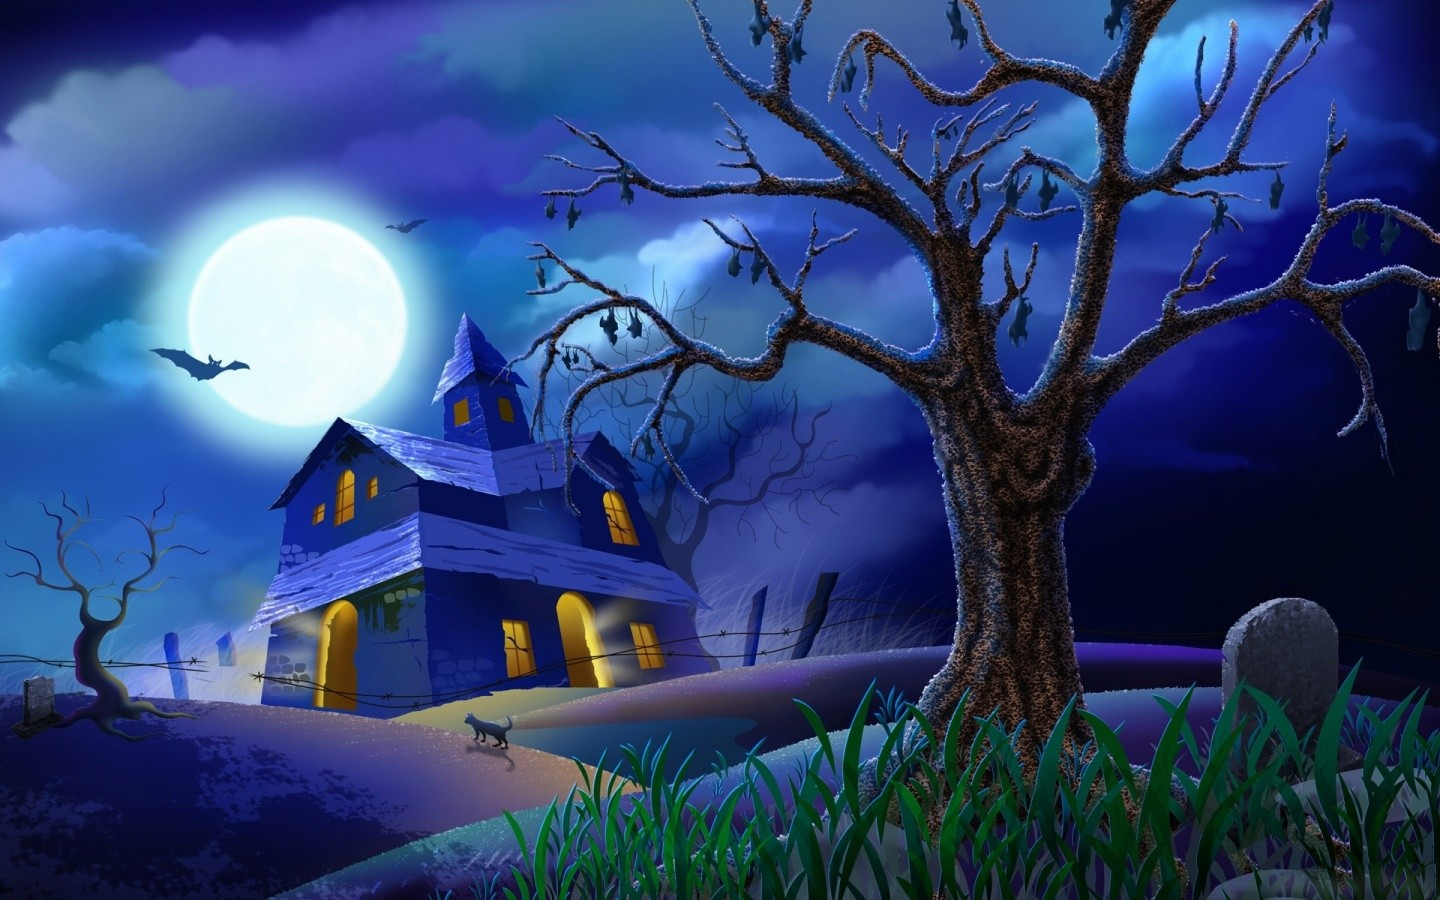 House HD Wallpaper Animated HD Wallpaper Animation HQ Wallpaper 1440x900